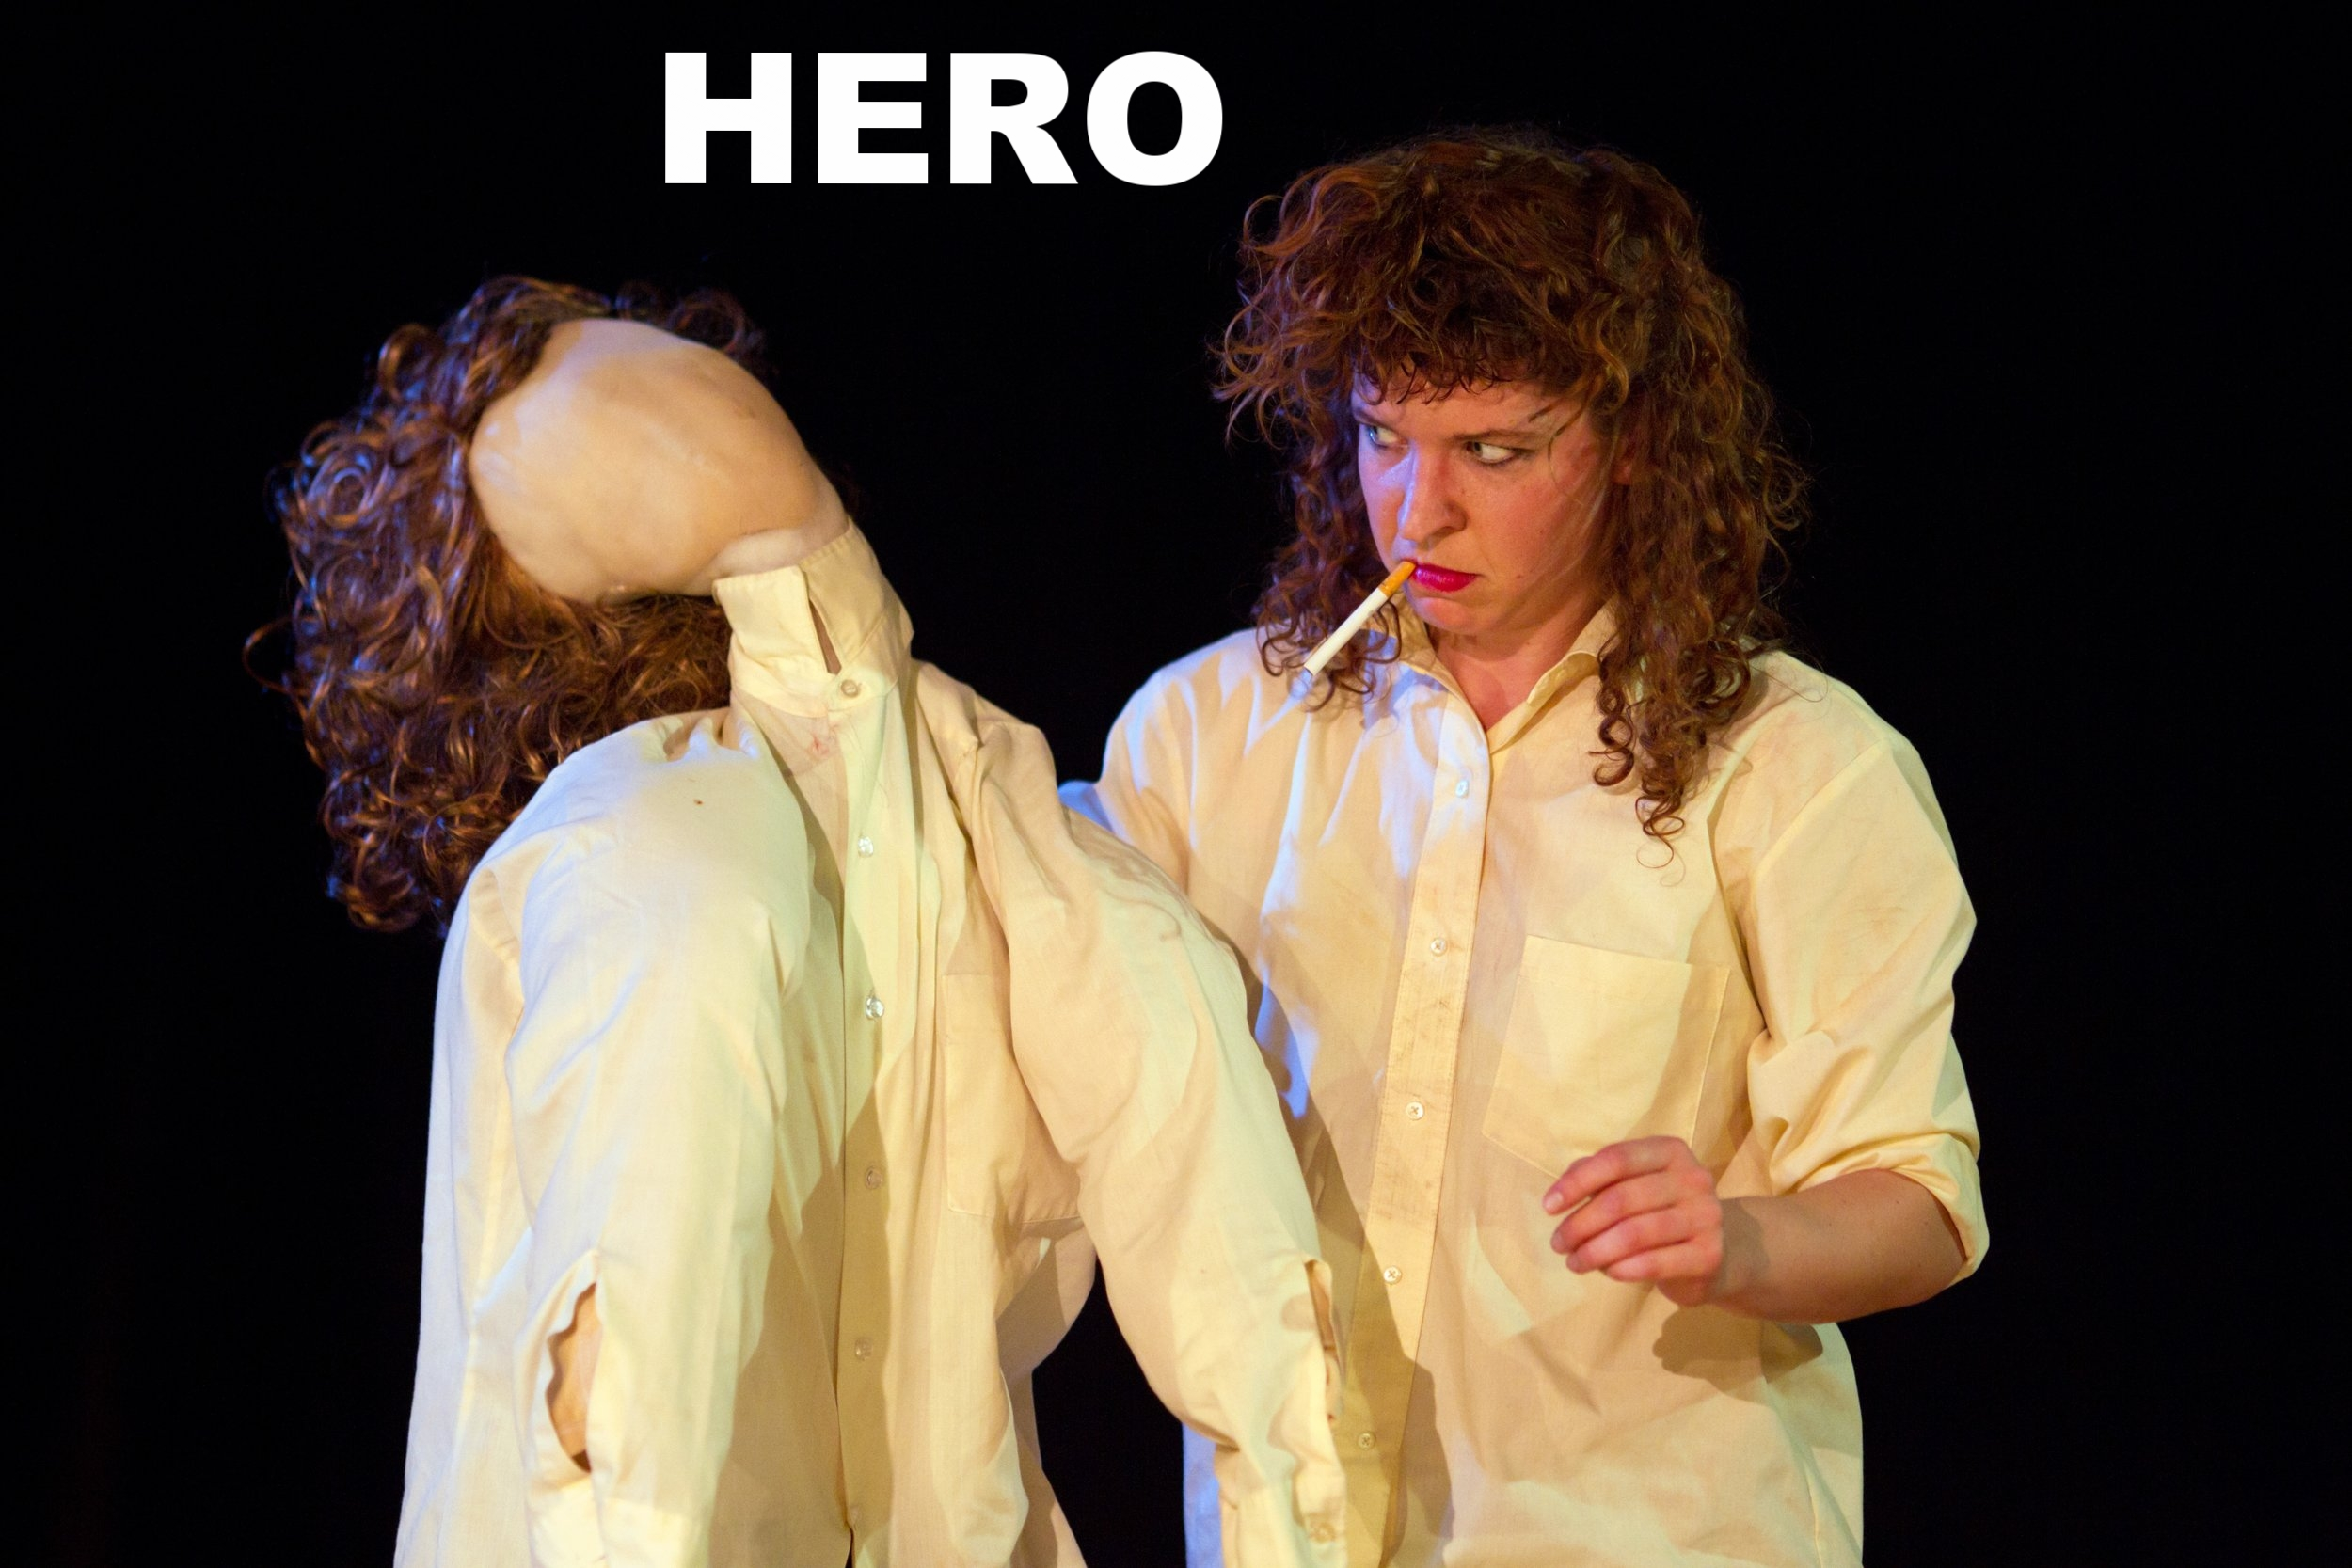 """""""Hero"""" was originally conceived in 2008 and has been performed more than any other piece in Marill's repertory. Originally choroegraphed in direct response and relationship to Enrique Iglesia's """"Hero,"""" pop hit, this piece subverts the message of what and who a """"hero"""" might be. How can we be our own heroes?"""